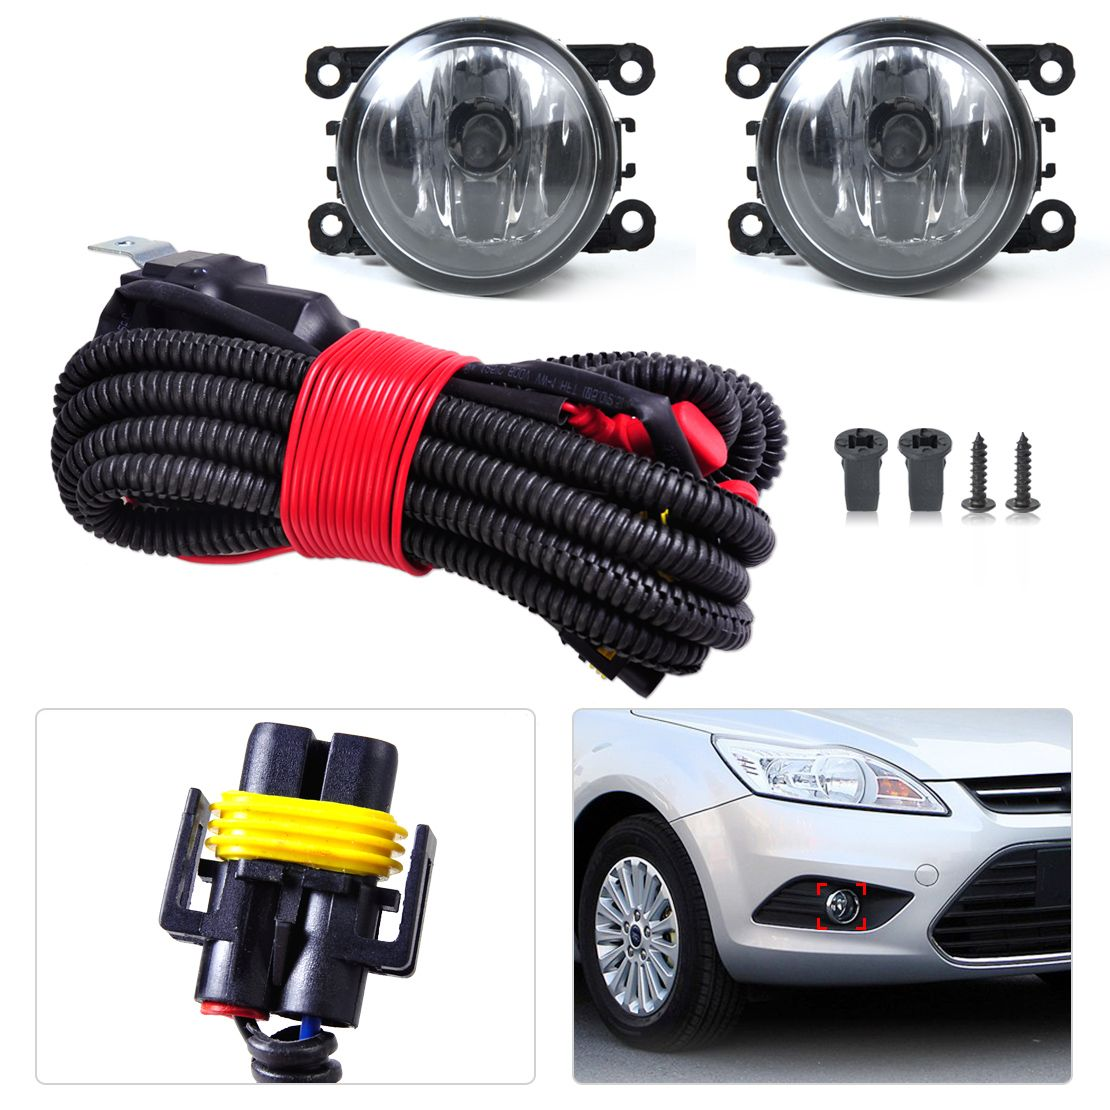 small resolution of new h11 wiring harness sockets wire connector 2 fog lights lamp 4f9z 15200 aa for ford focus honda cr v pilot acura tsx nissan